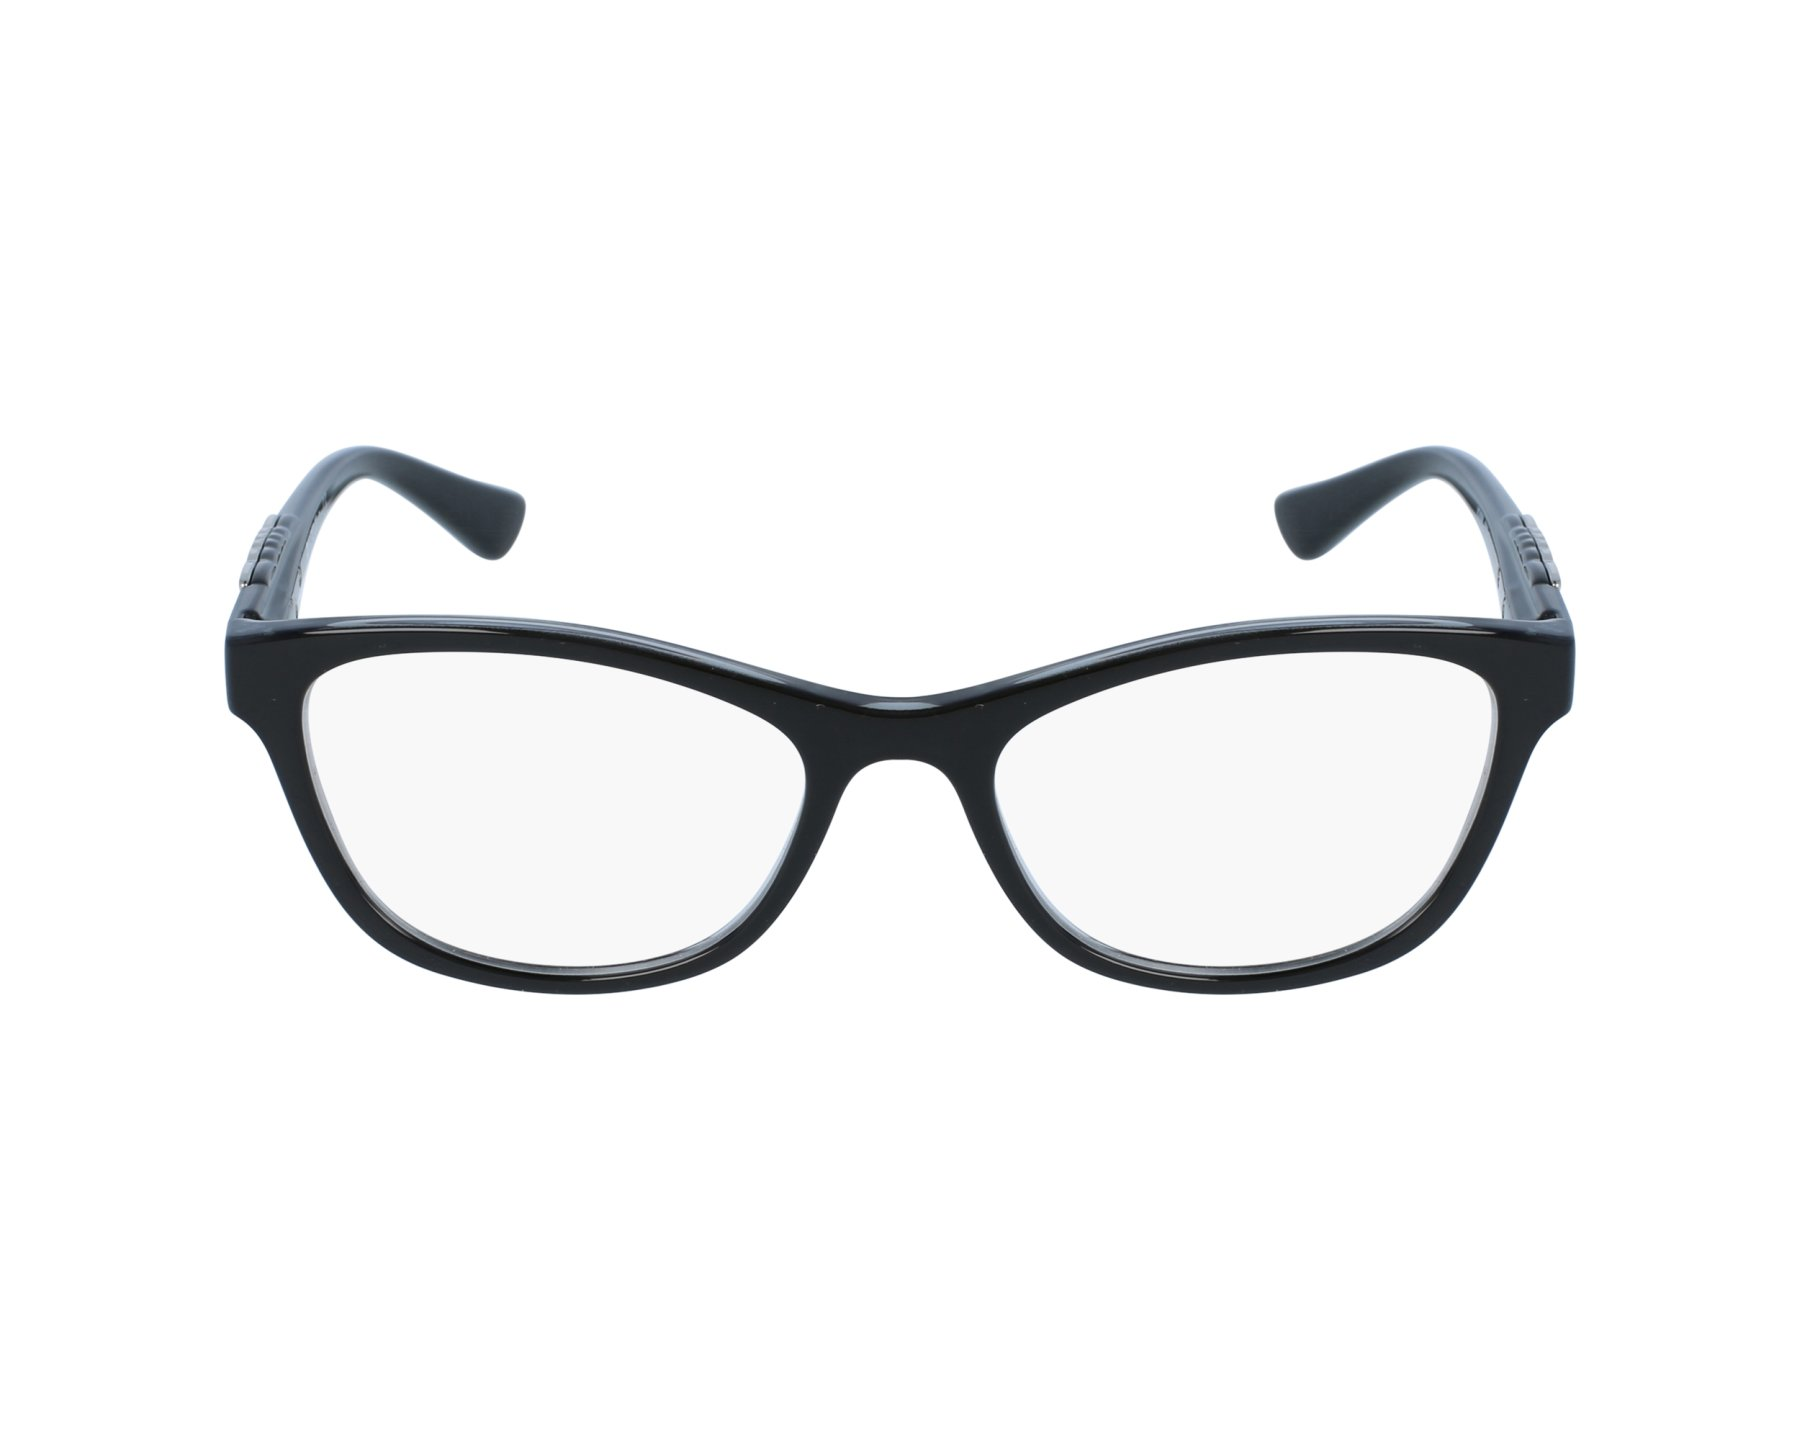 eyeglasses Vogue VO-5056 2385 51-17 Black profile view